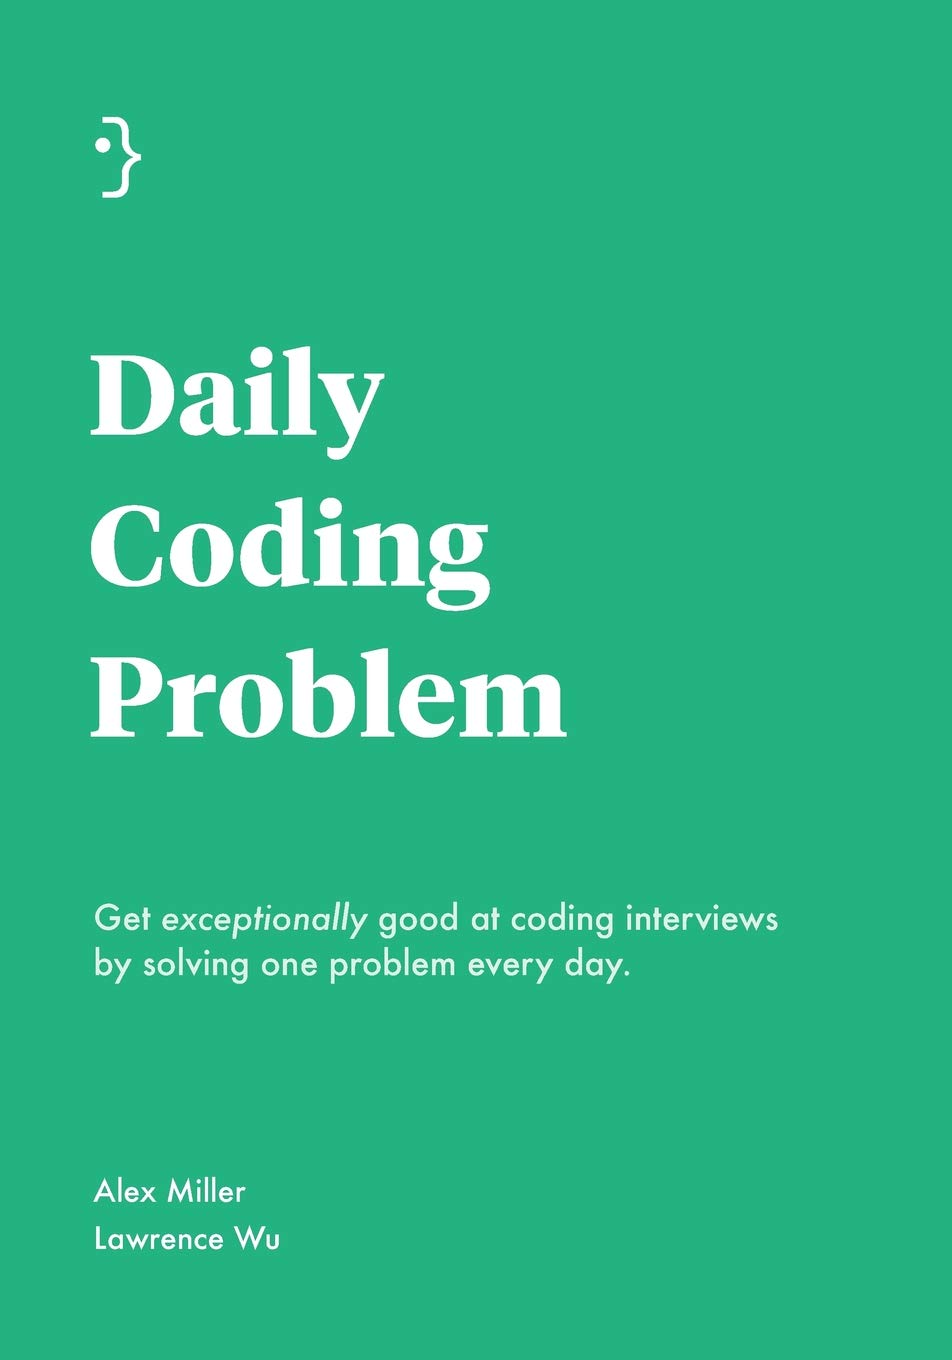 Buy Daily Coding Problem: Get exceptionally good at coding